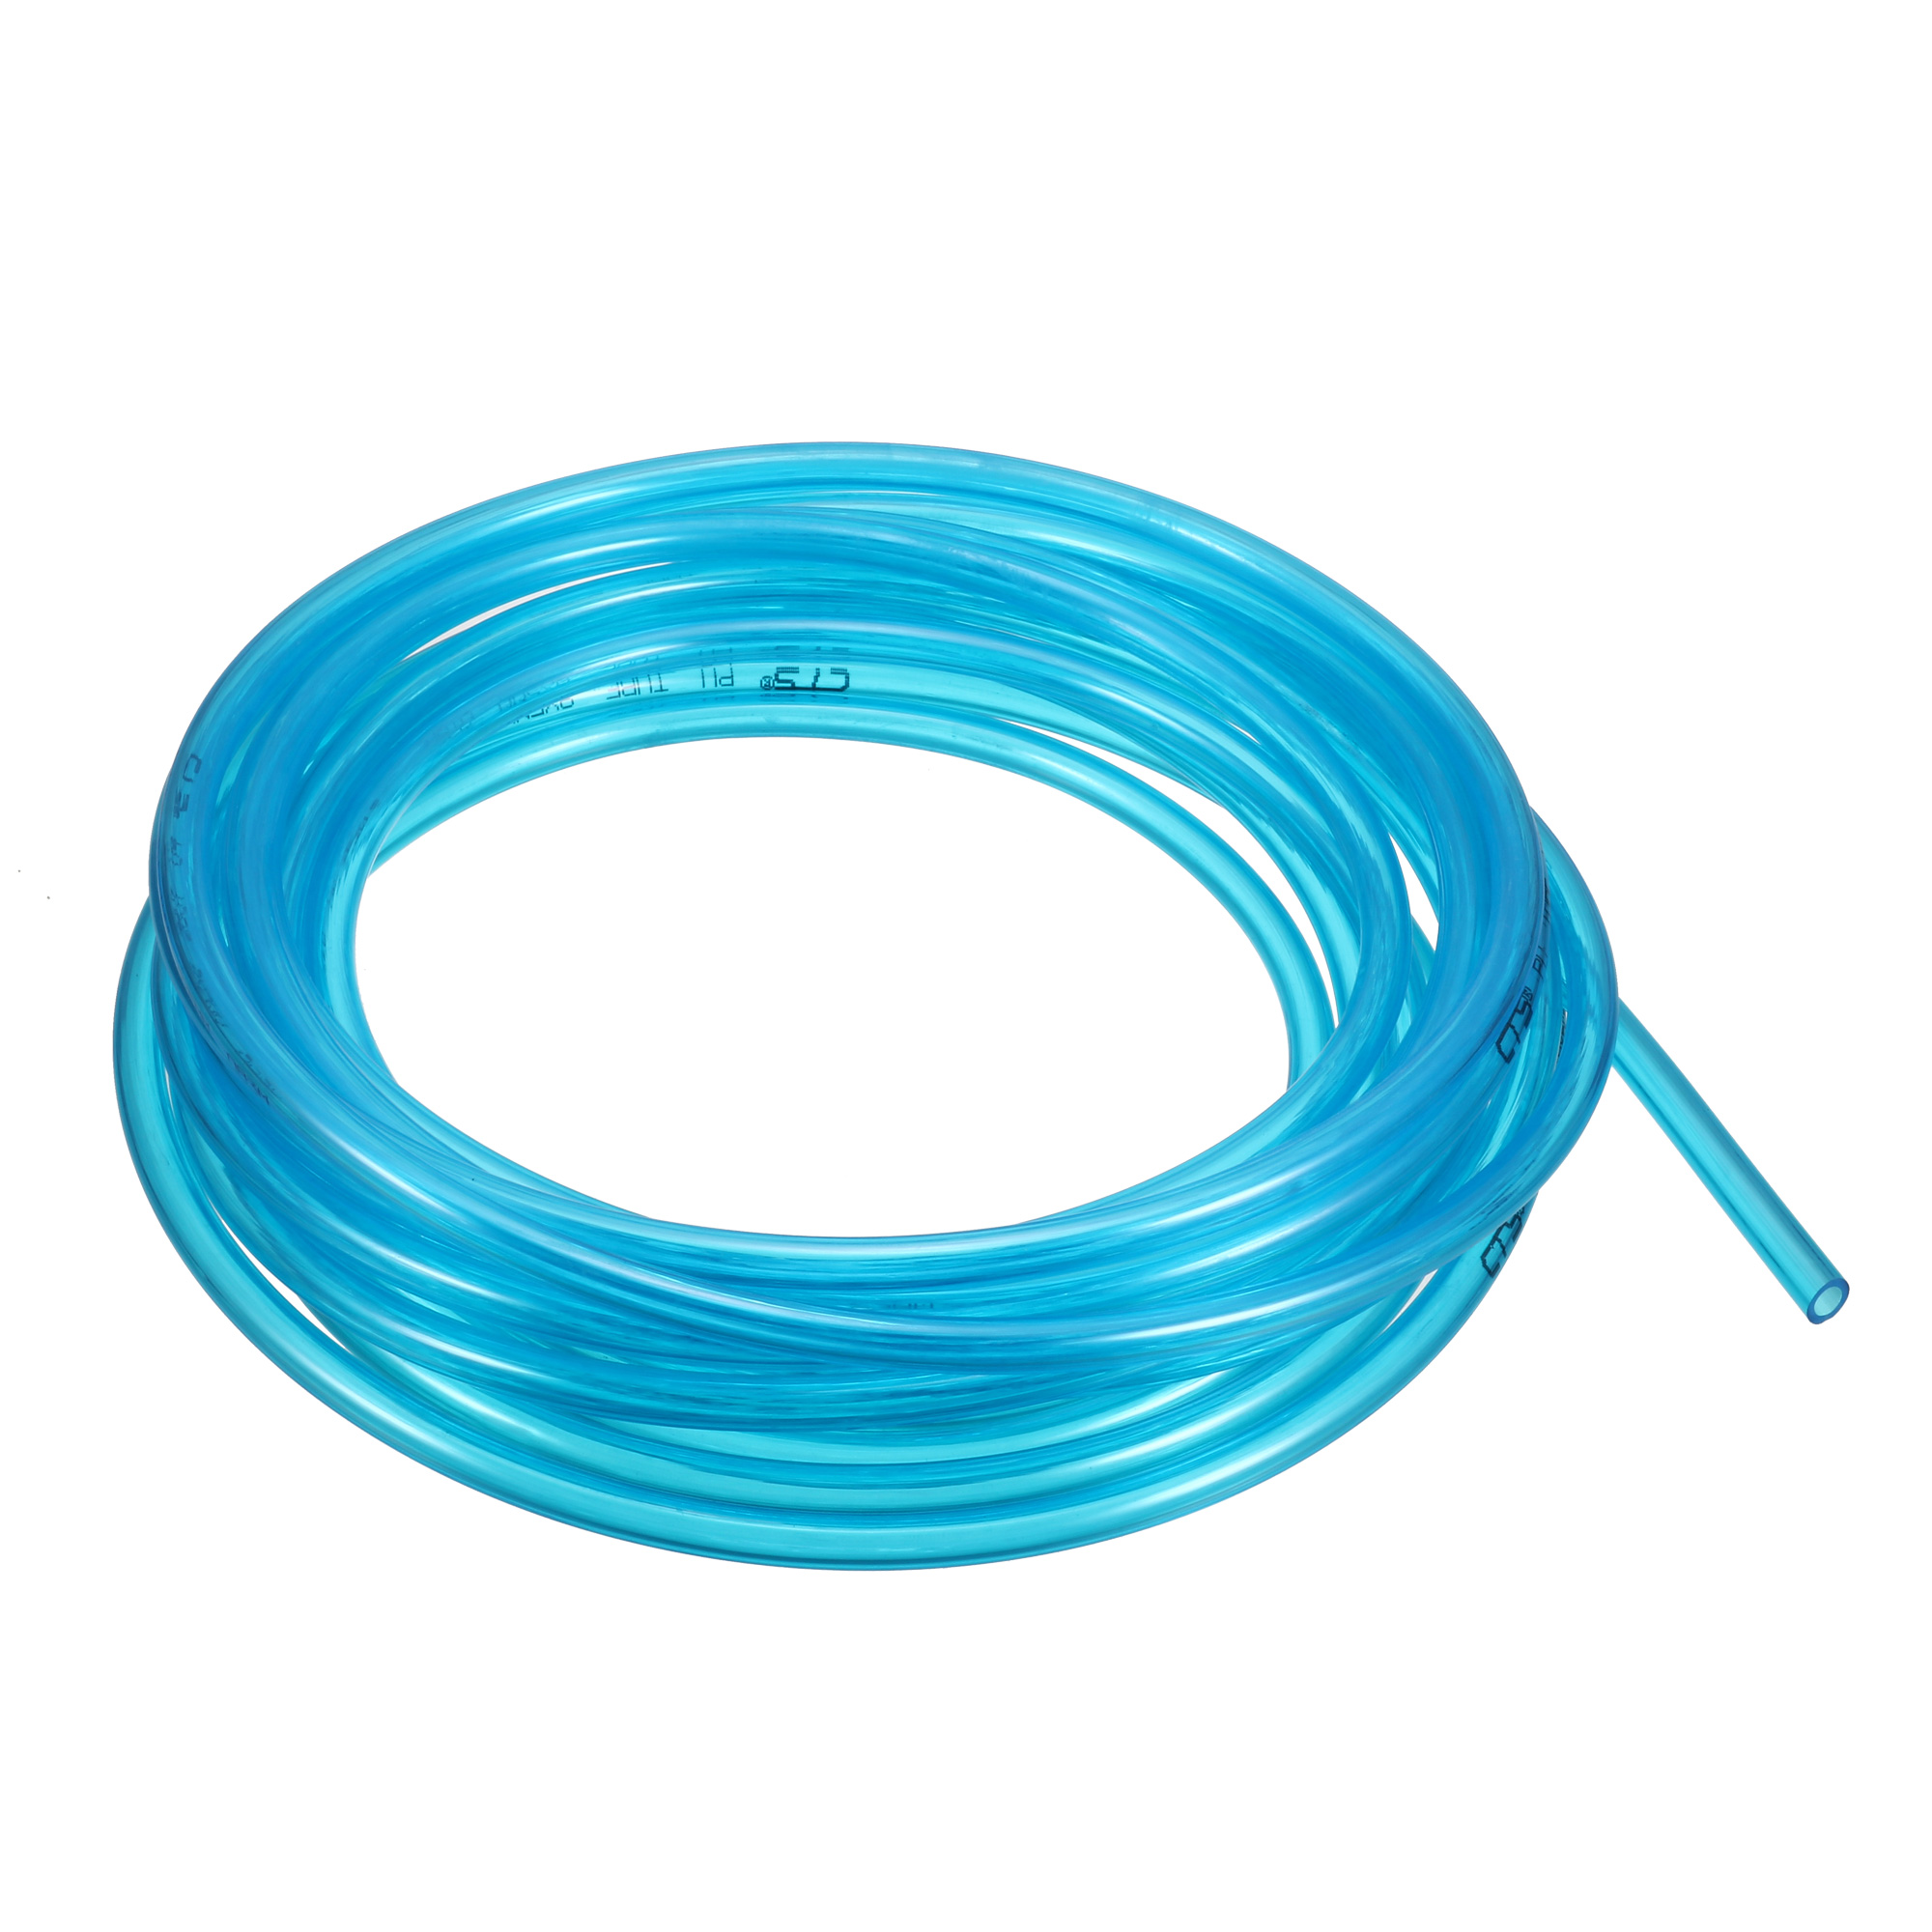 PU Polyurethane Tubing 8mm x 5mm Dia 8M 26Ft Air Tube for Connector Fitting